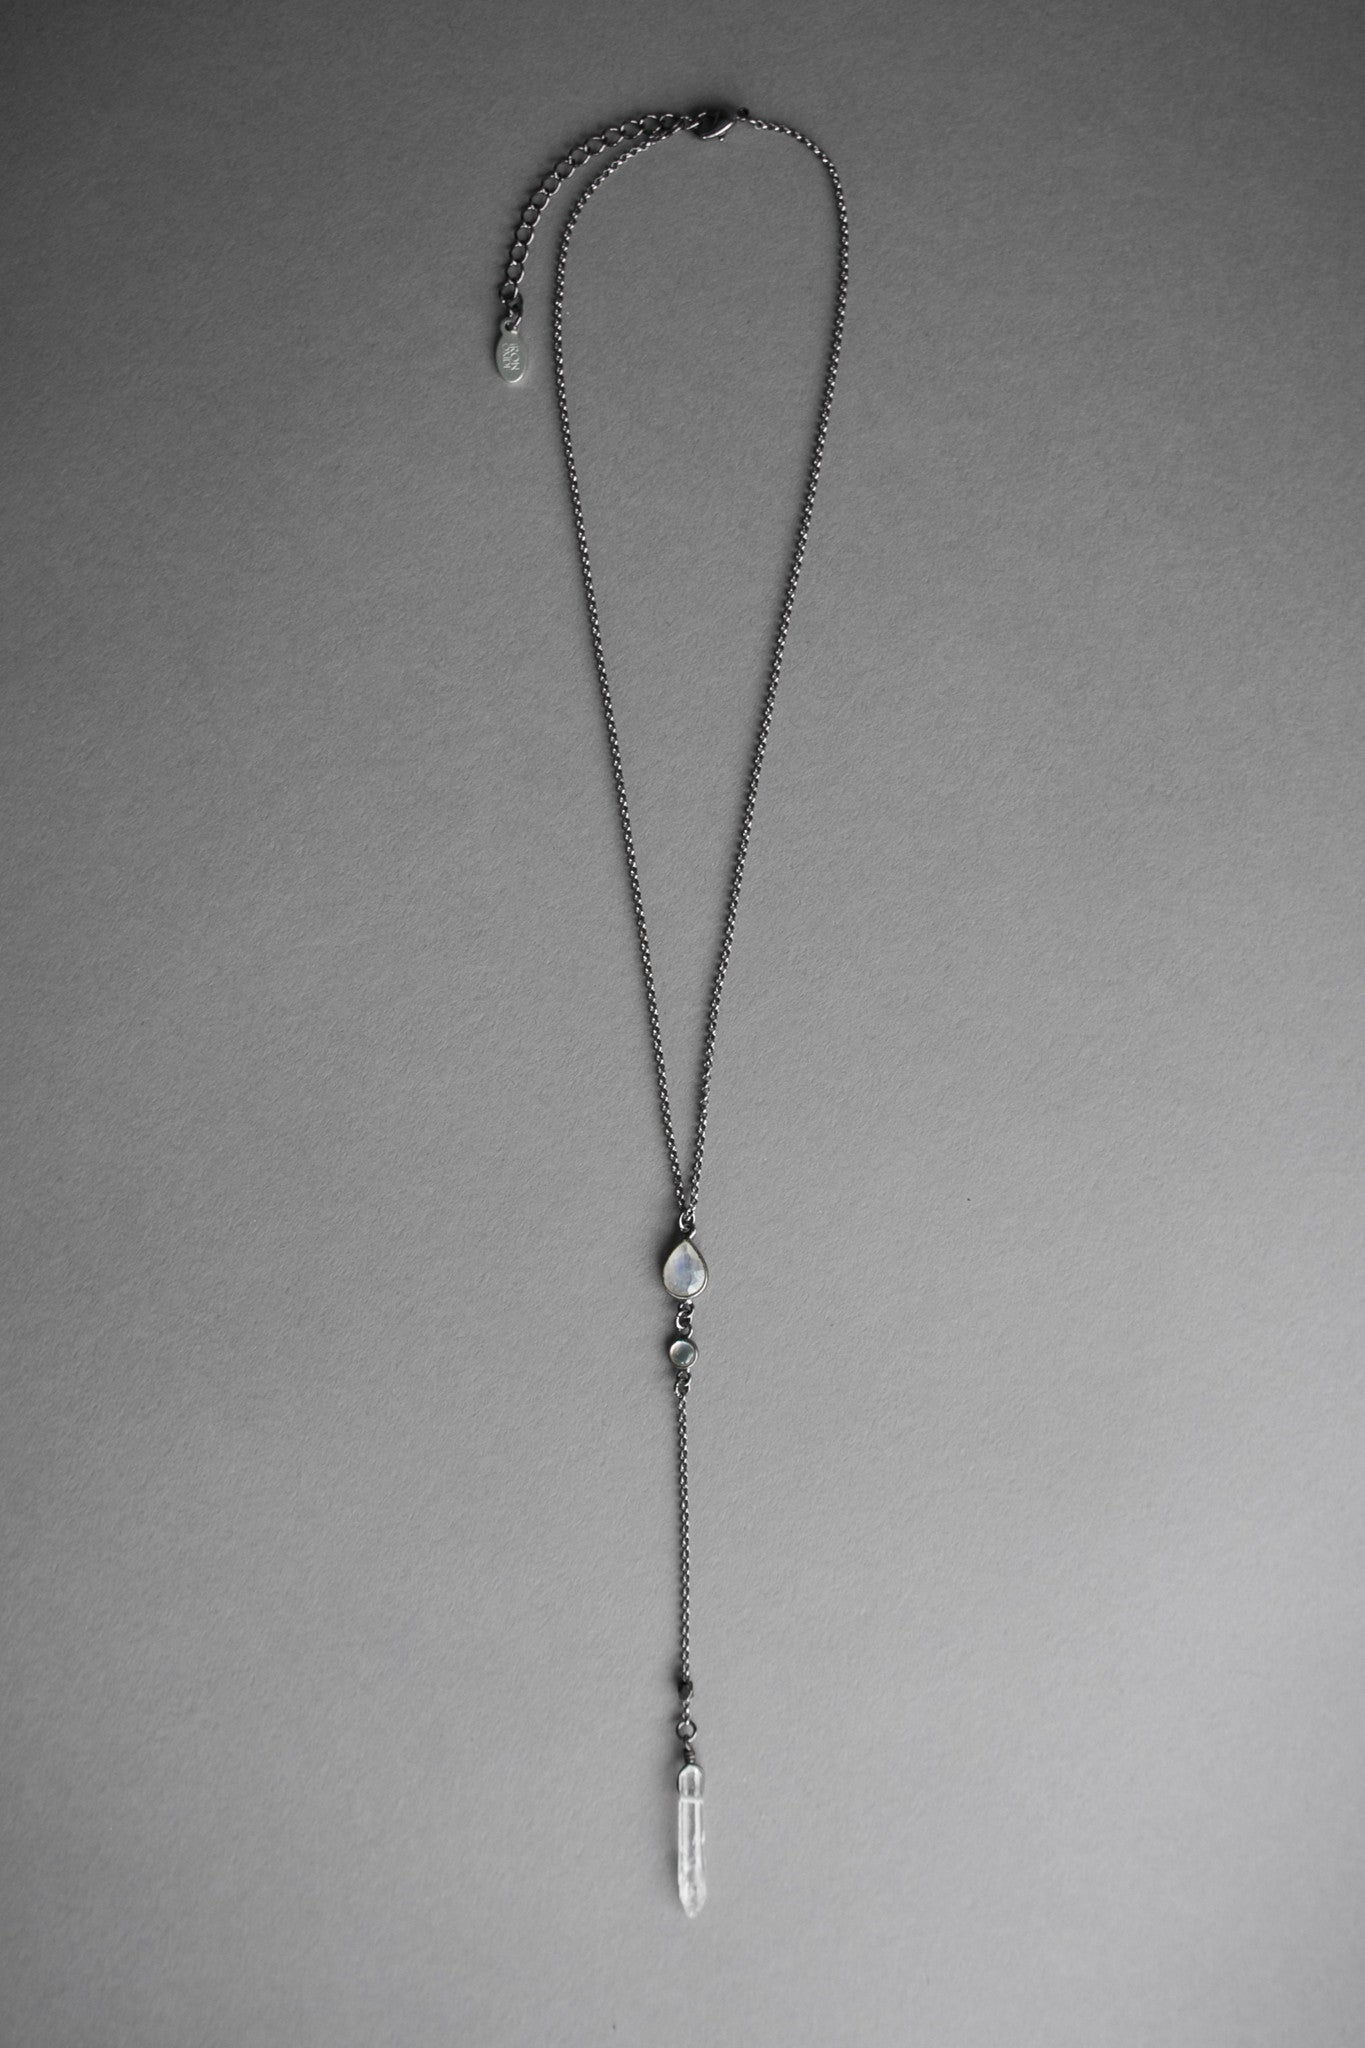 Moonstone Lariat Necklace, Jewelry, Iron Oxide - Altar PDX